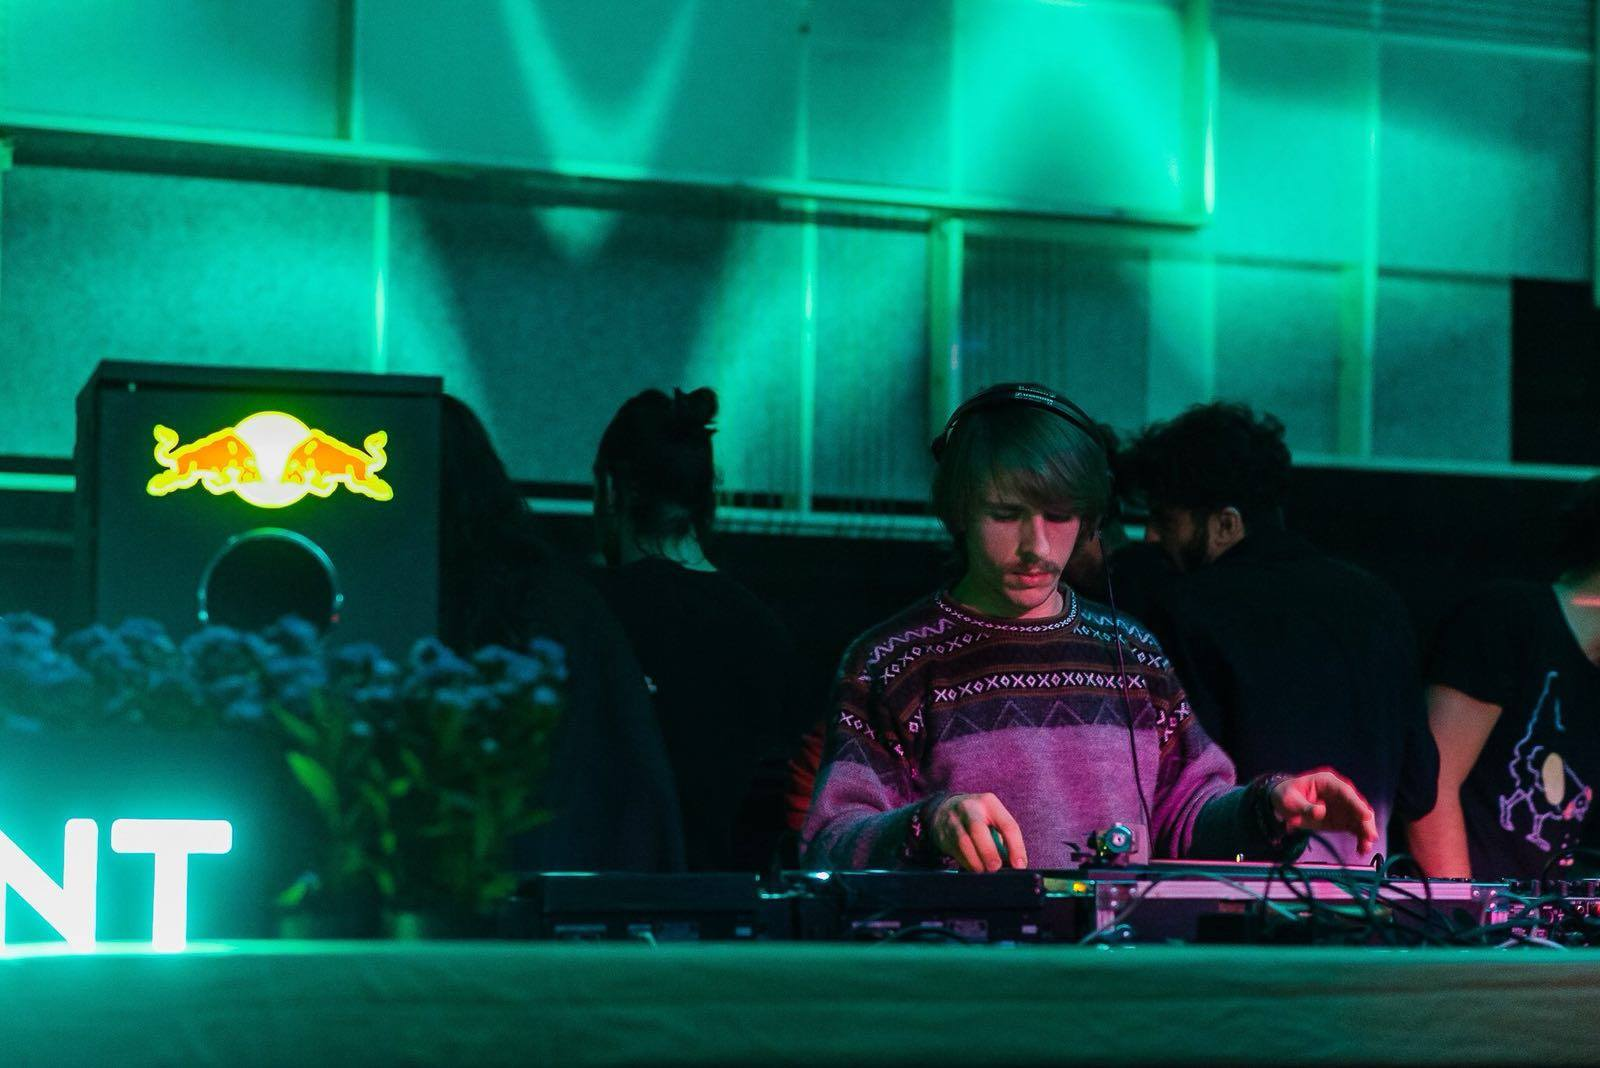 """Biography - Russian producer Denis Kaznacheev has received a healthy level of acclaim and attention as co-founder of the label Nervmusic and as one half of Easy Changes.Now producing and playing solo, his pensive sounds waves subtle grooves in amongst discordant synth blasts, electronic bleeps and whirrs, tripped-out FX and tinges of organic instrumentation creating a fascinating juxtaposition and can best be described as """"Al Capone"""" sound. He's producing faster than the """"speed of light with releases on respected labels like Minibar, Aeternum, Arbartik & Only 300 Family to name a few. Catch him playing as Resident for Epizode Festival & The Volks and well known venues & festivals allover the world like Concrete, Gazgolder, Arma, Mioritmik, Sunwaves, Signal and Fuse.View full biography"""